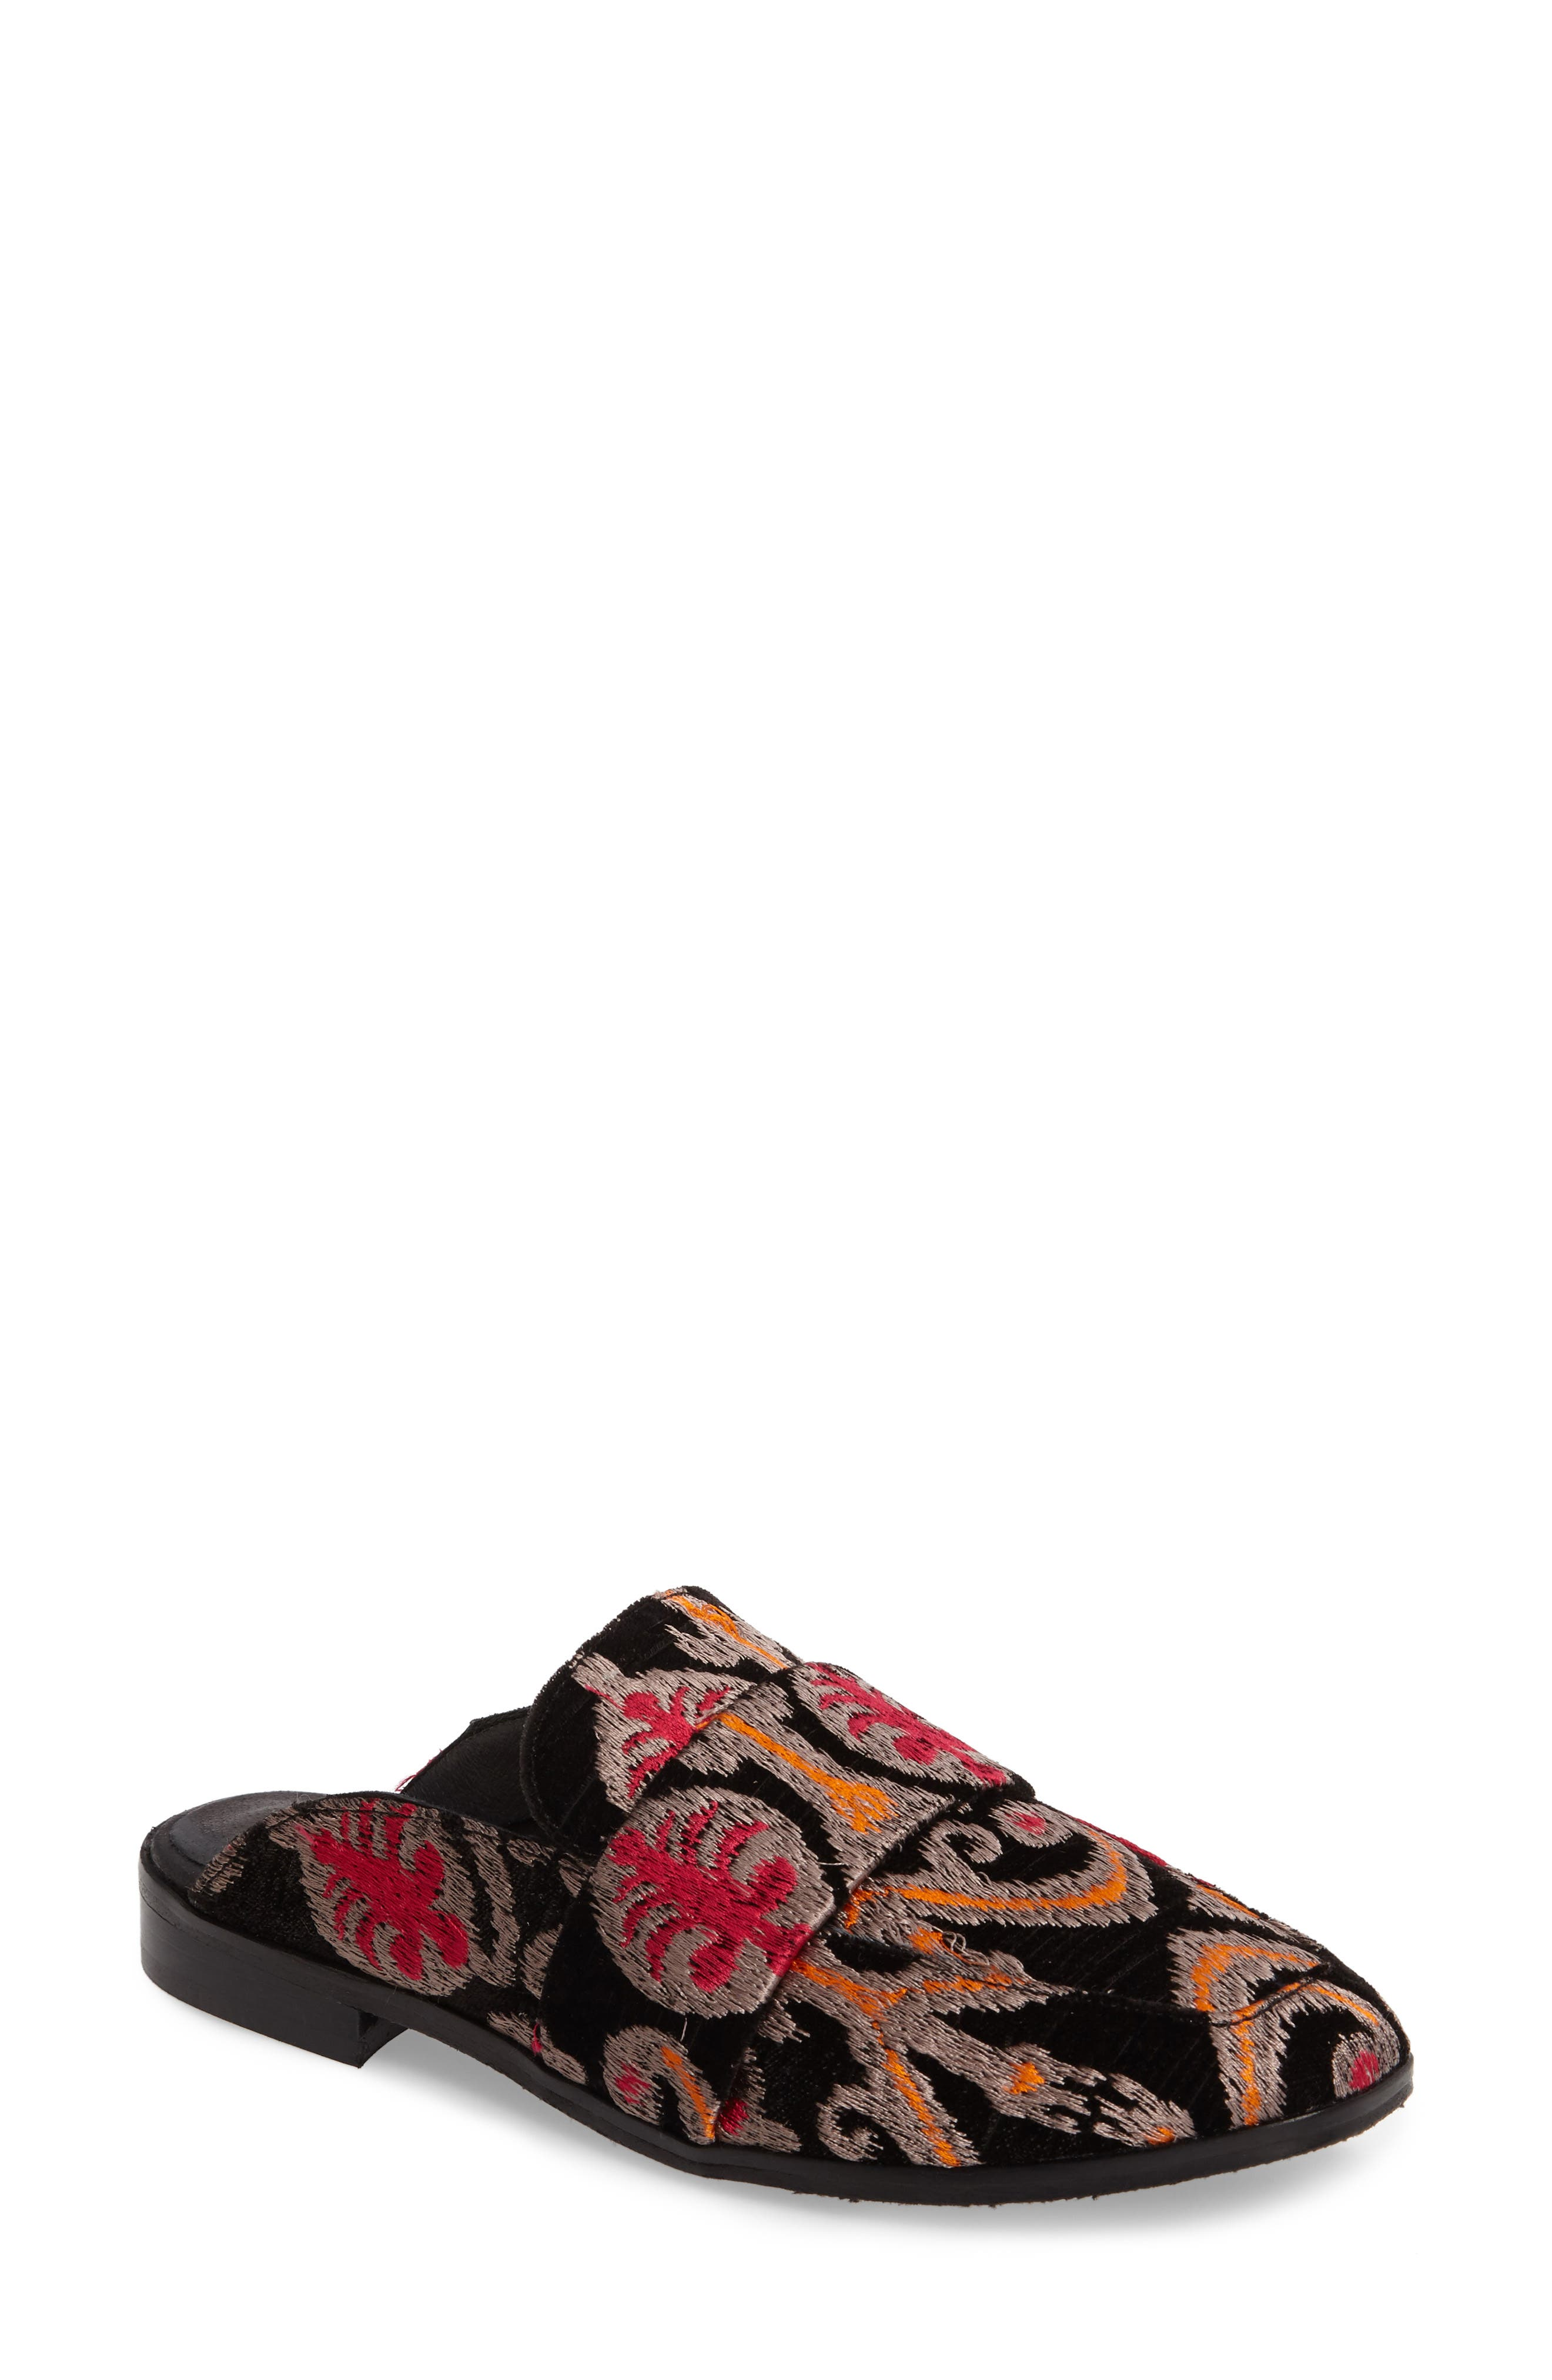 At Ease Loafer,                         Main,                         color, Black Combo Fabric